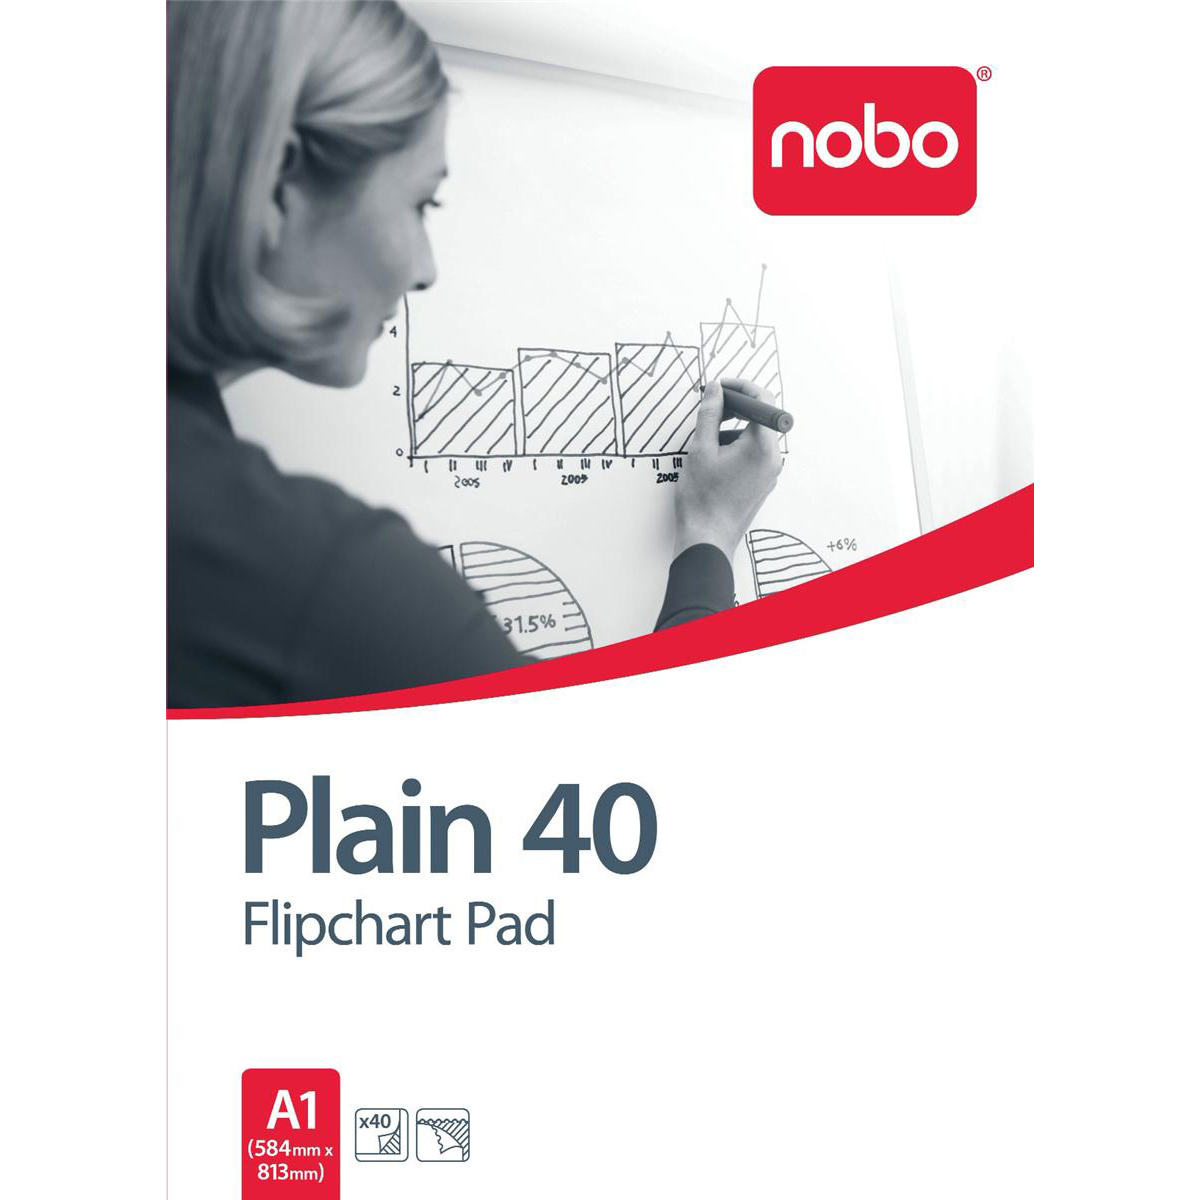 Nobo Flipchart Pad Perforated 40 Sheets 70gsm A1 Plain Ref 34631165 Pack 5